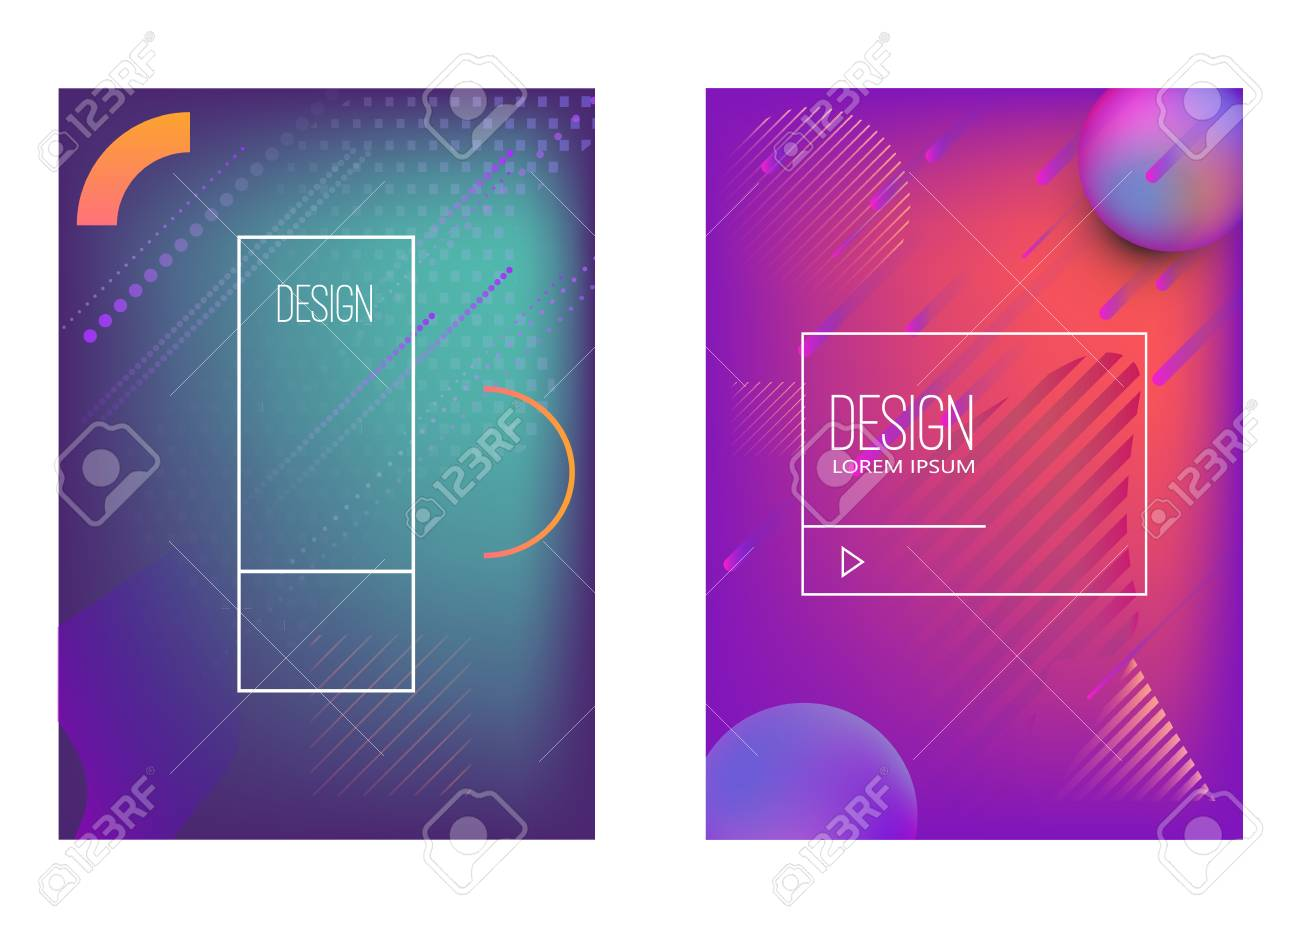 Set of banner design templates with abstract vibrant gradient shapes. Design element for poster, card, flyer,presentation, brochures,cover. Vector image - 105948661